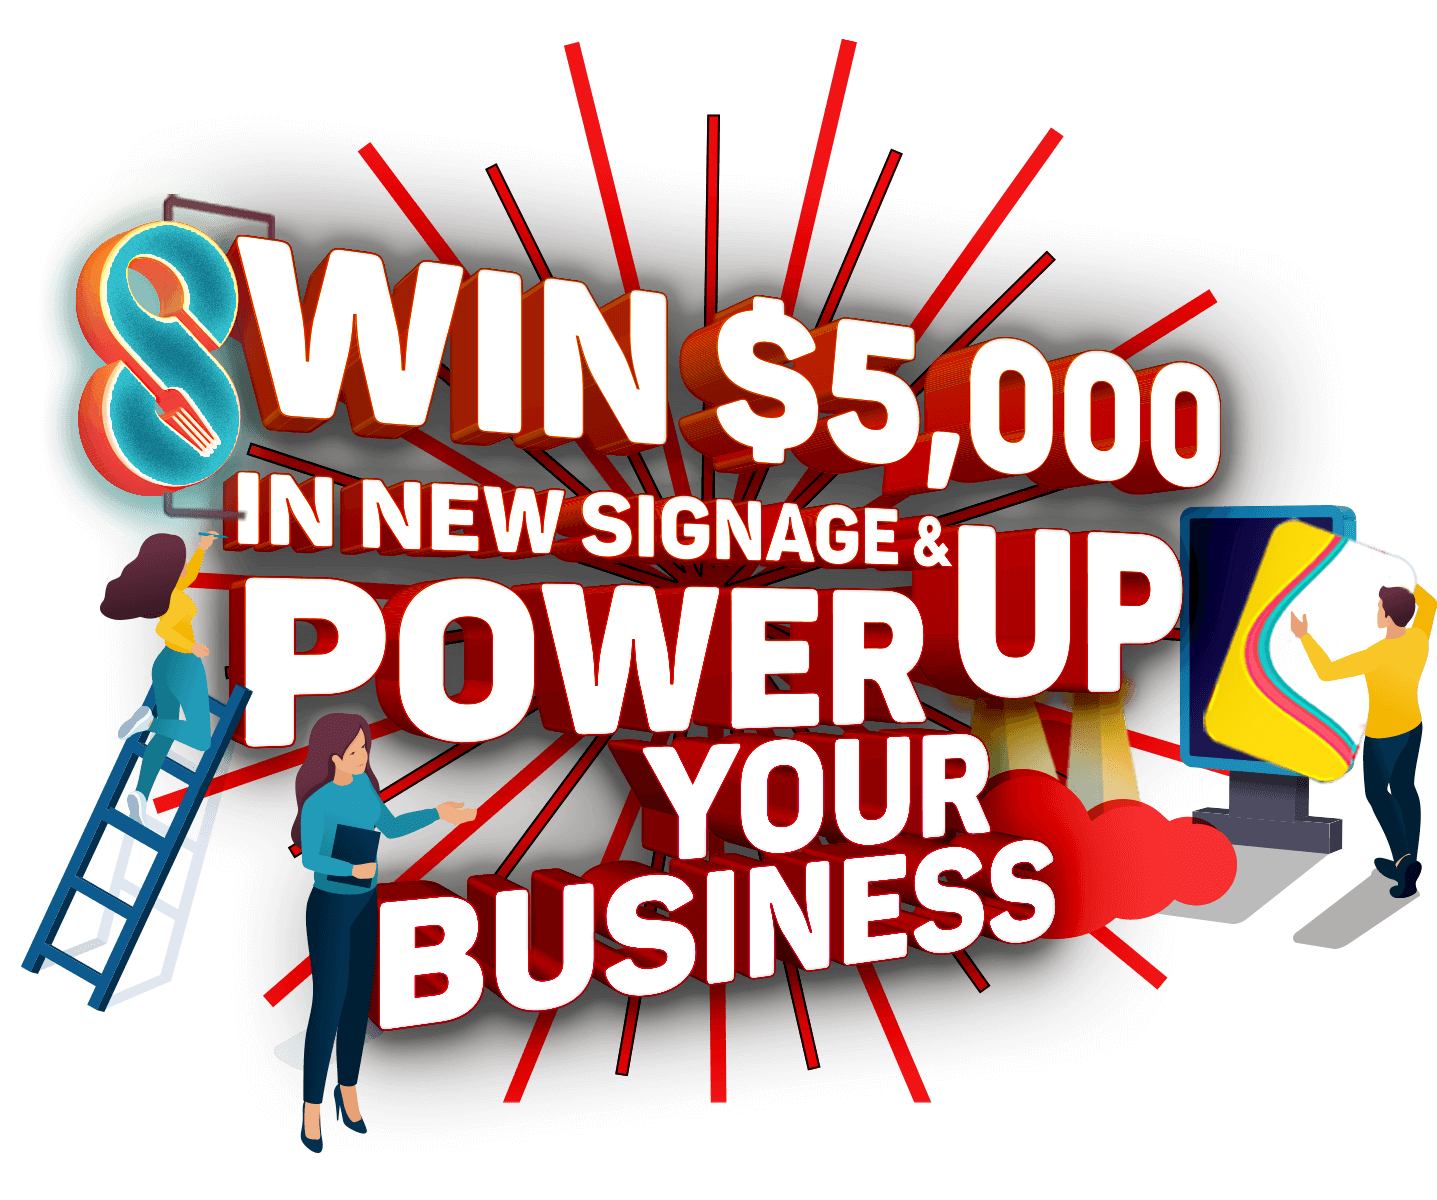 WIN $5,000 In New Signage and POWER Up Your Business!